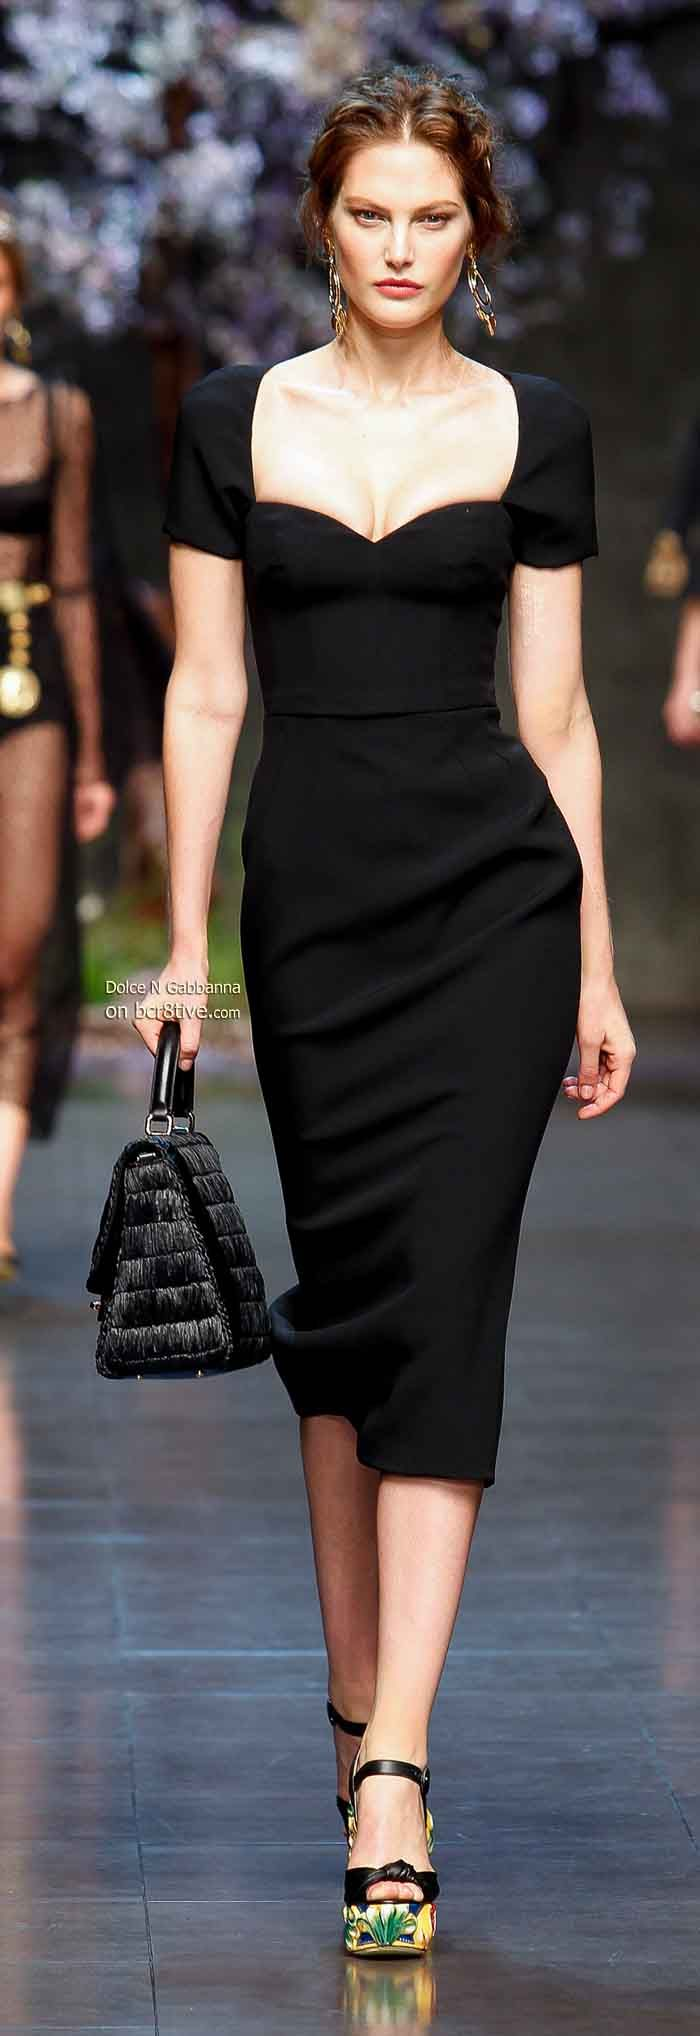 f58405fb Dolce & Gabbana Spring 2014 -Love the neckline on this little black dress.